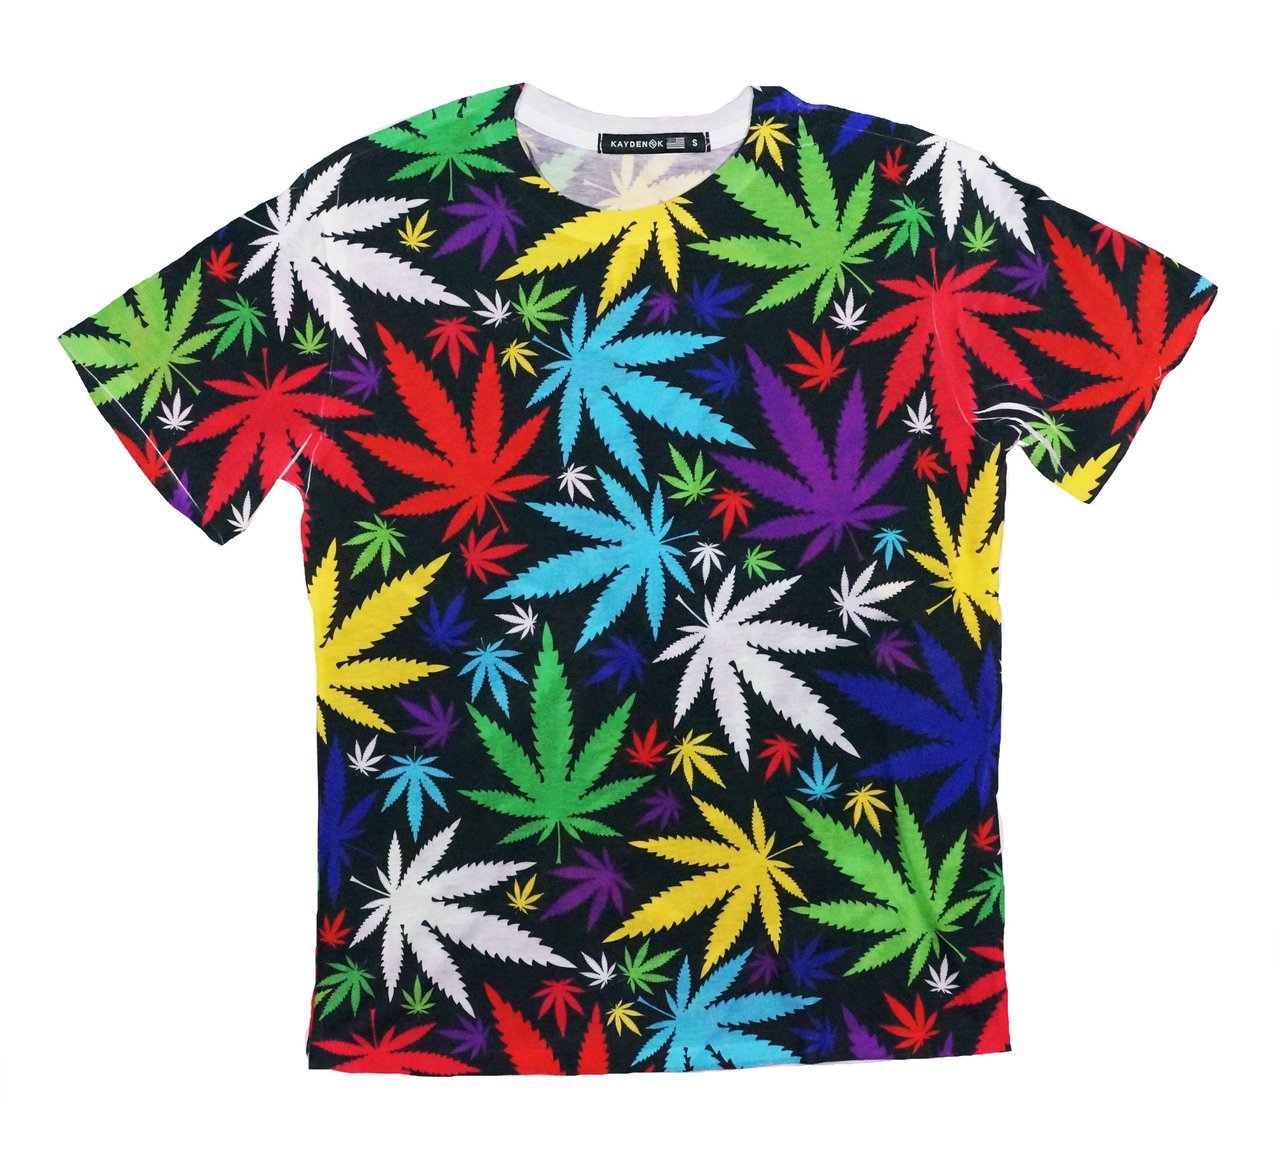 Men's Sublimation All Over Print T-Shirt Colorful Marijuana Leafs